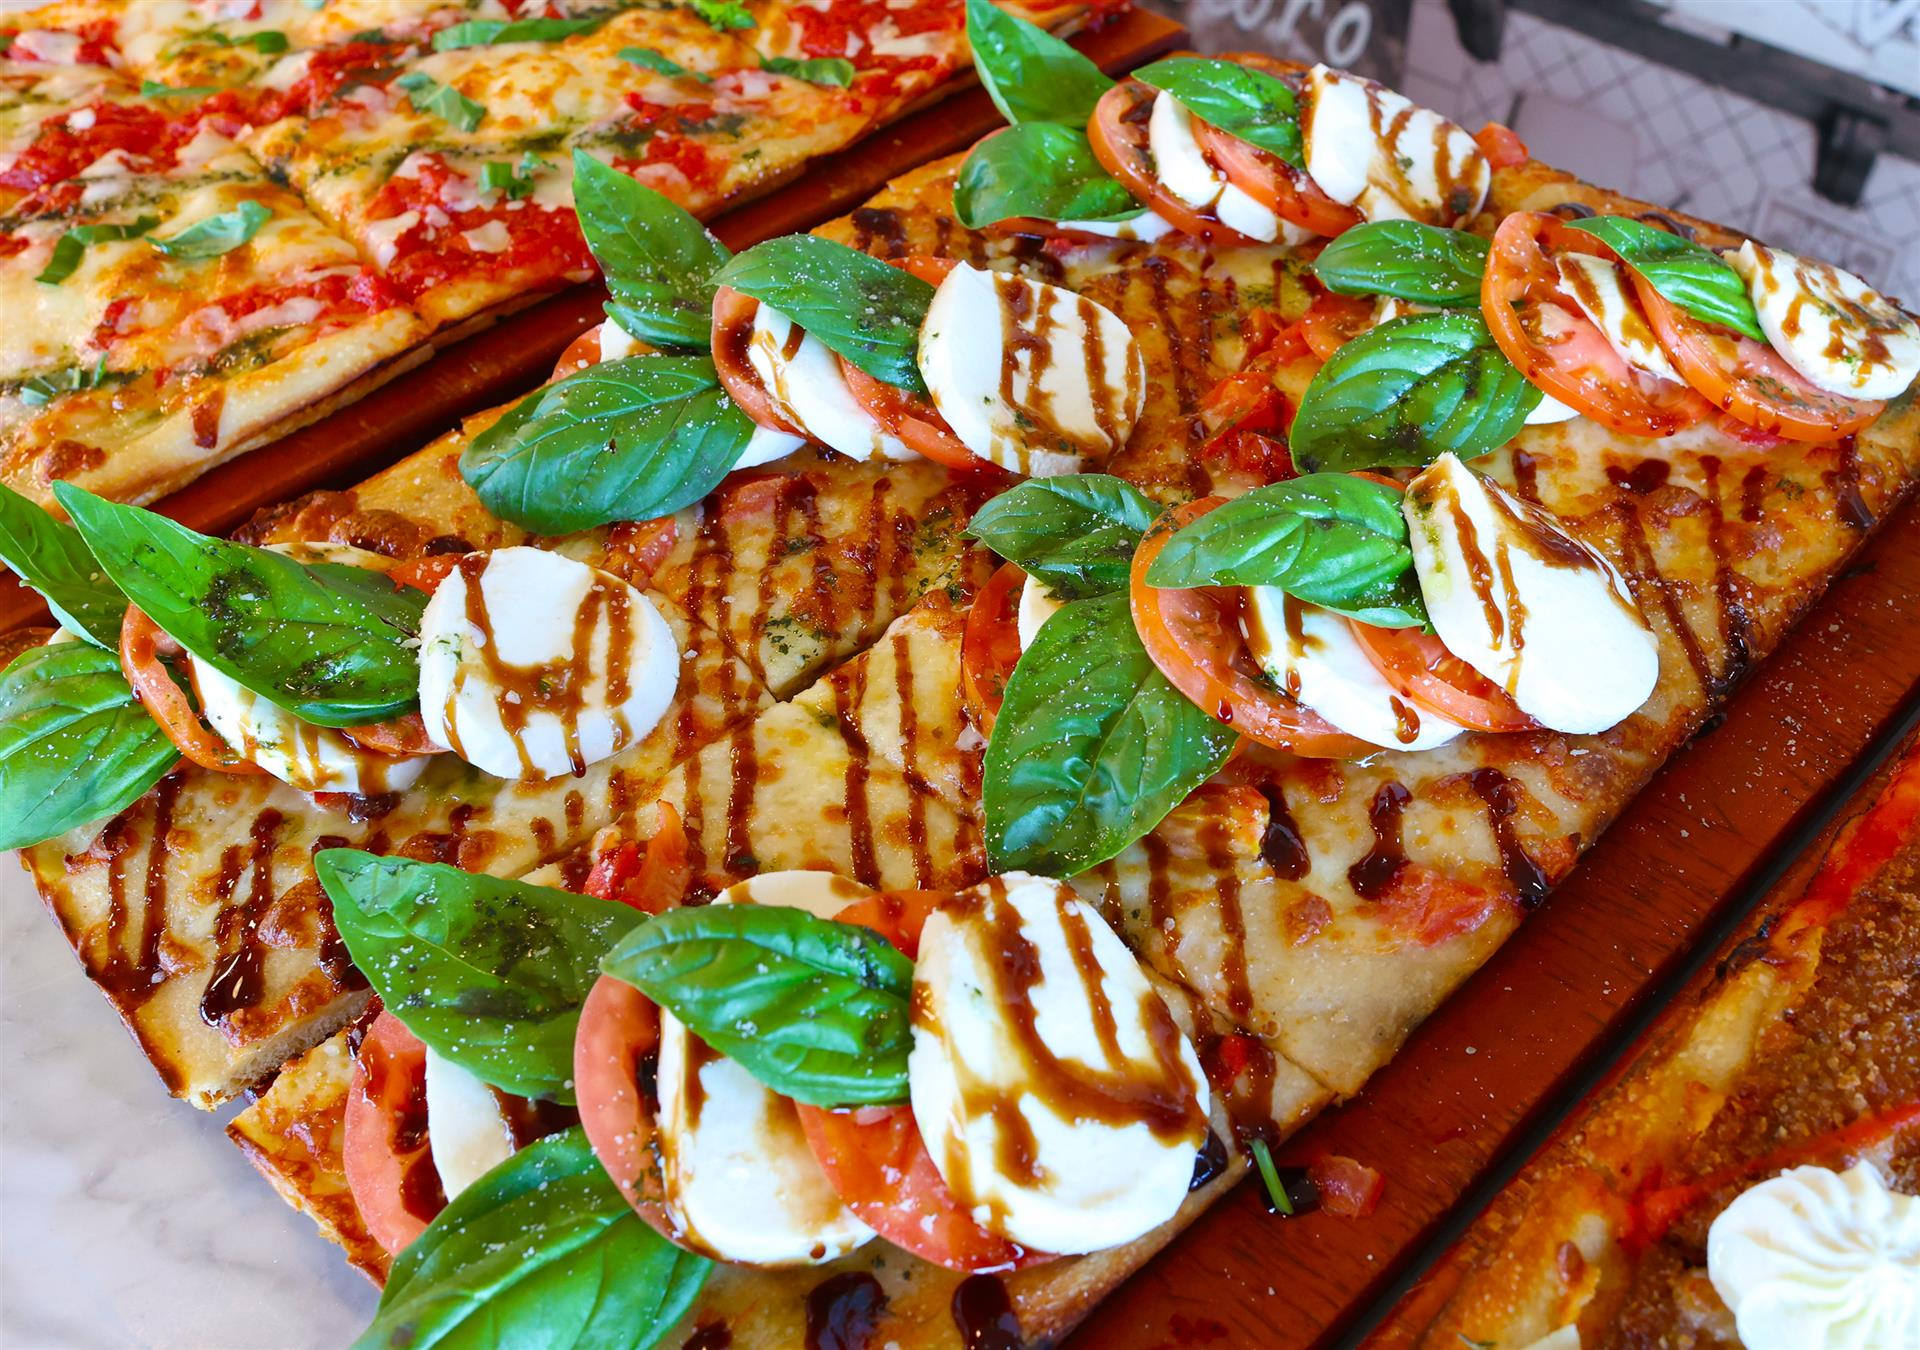 flatbread with sliced mozzarella, tomatoes, basil and a balsamic drizzle